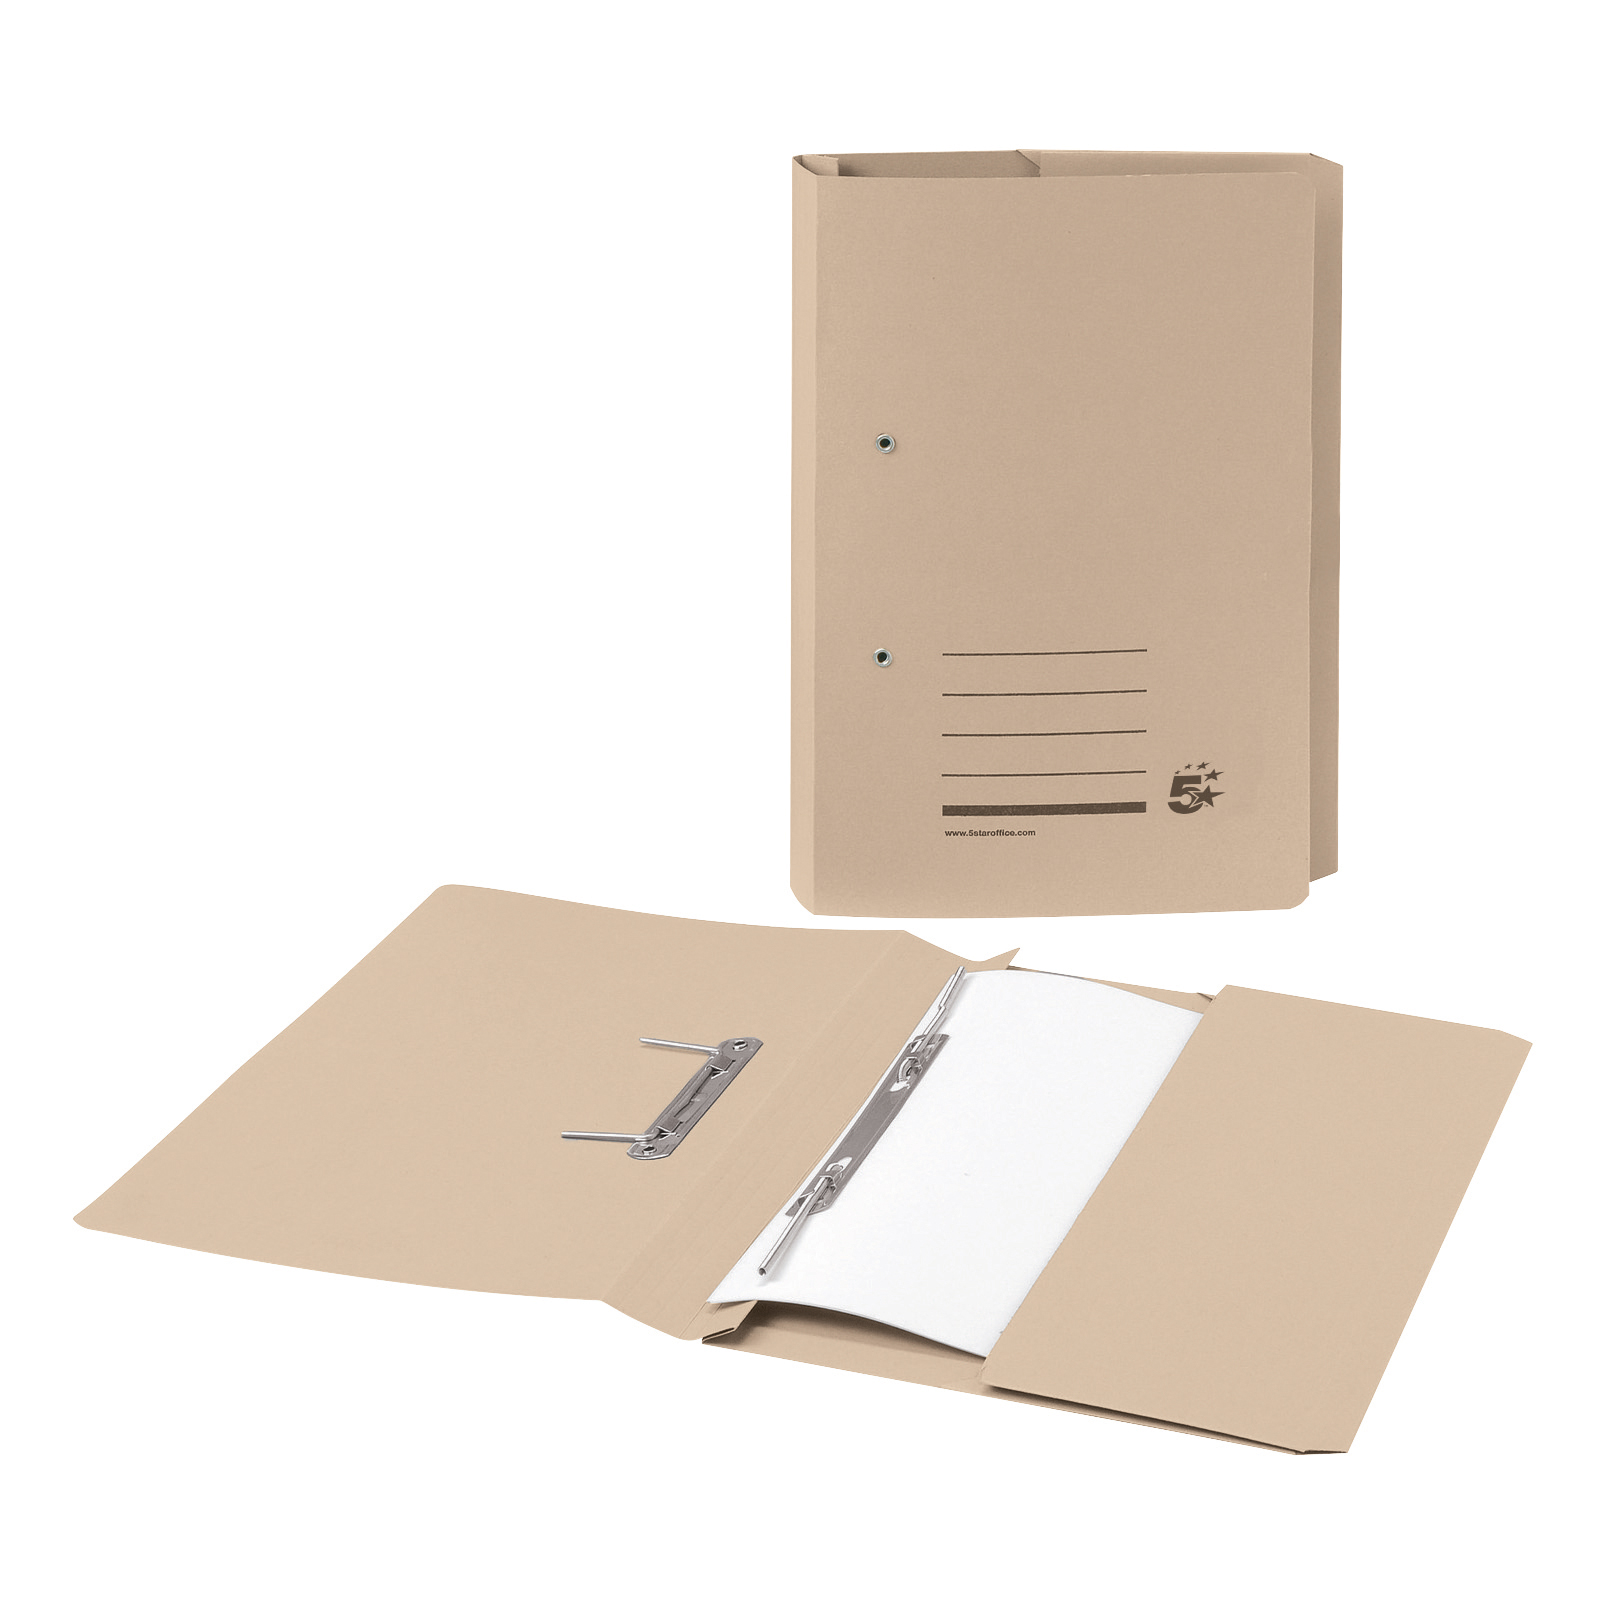 5 Star Office Transfer Spring Pocket File Recycled 285gsm Capacity 38mm Foolscap Buff [Pack 25]